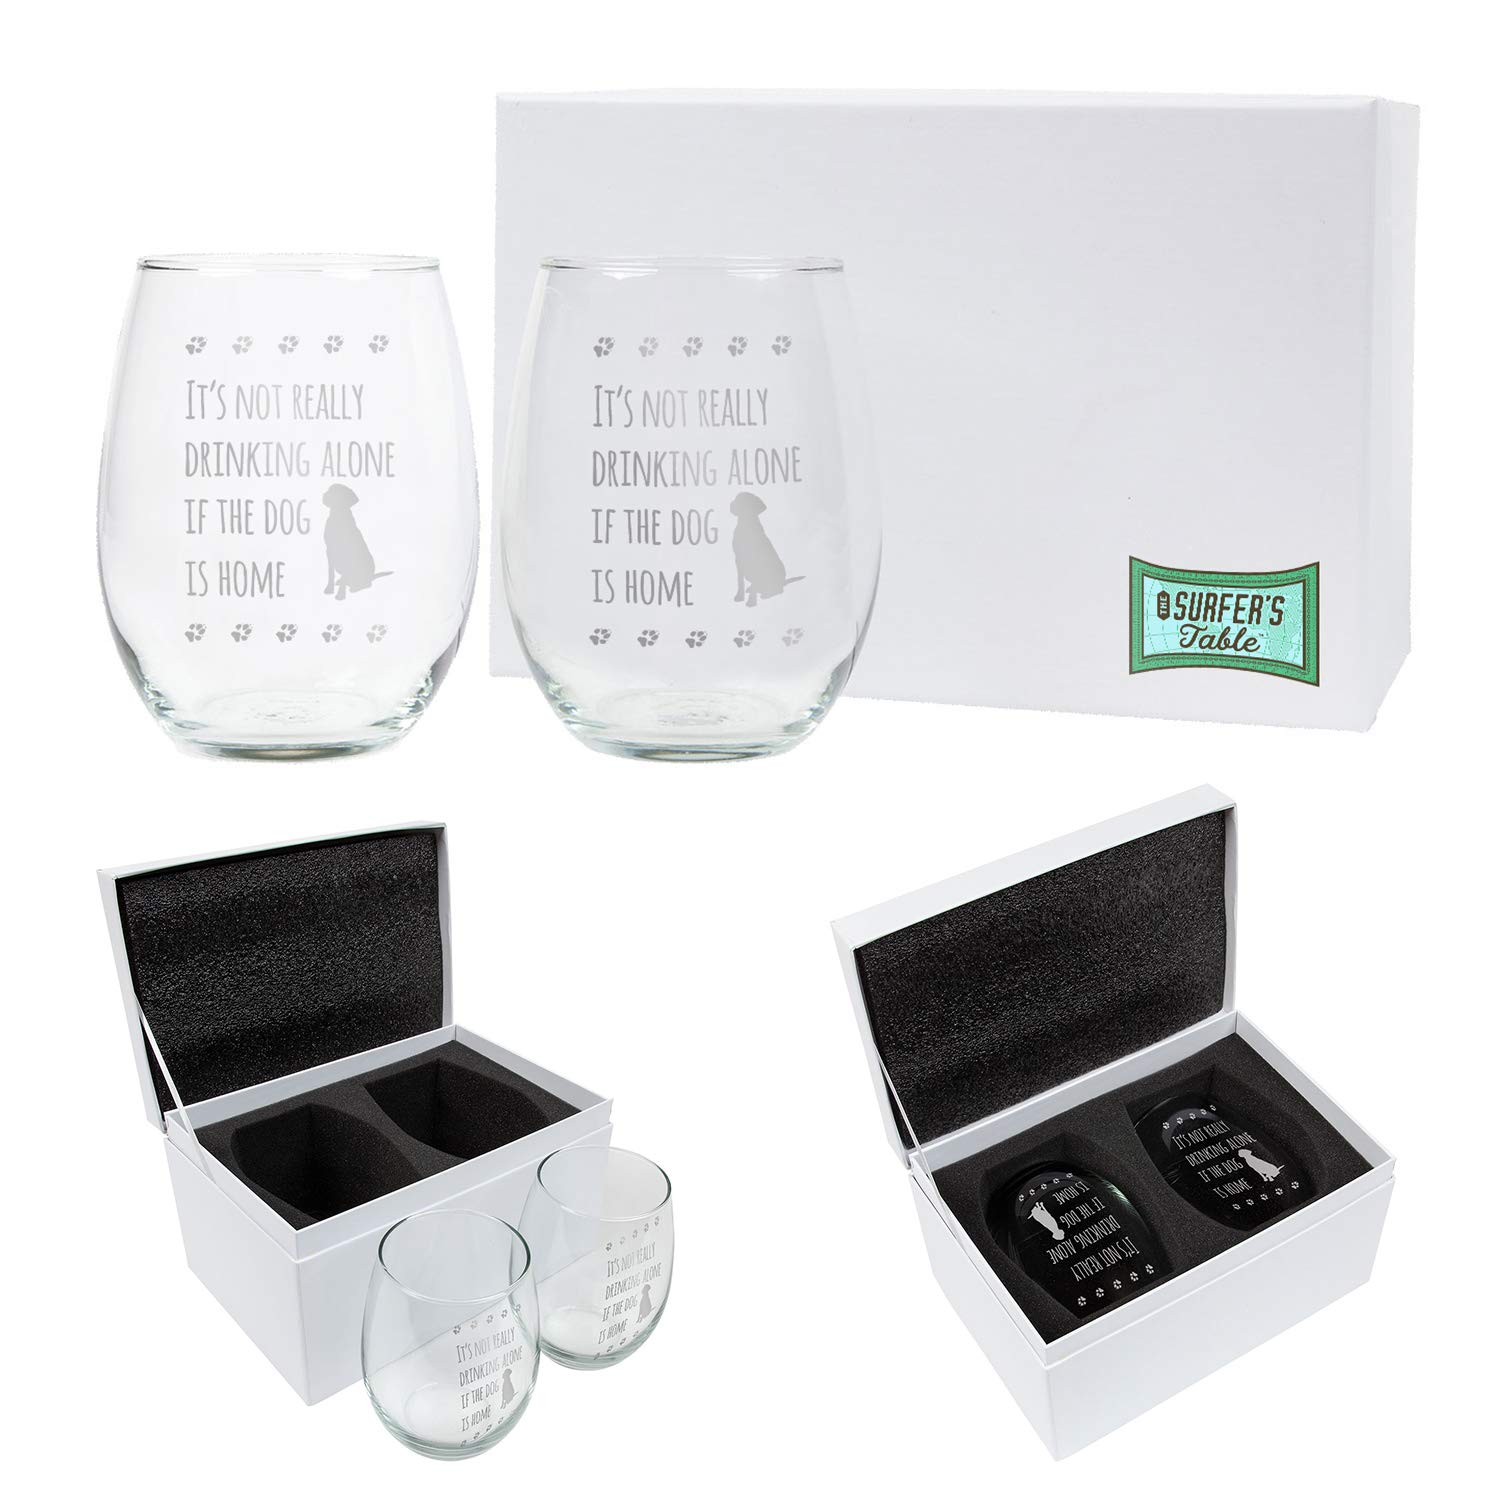 It's Not Really Drinking Alone if the Dog is Home Wine Glass Gift Set, 2 – 21oz Hand Etched Stemless Wine Glasses Packed in a Stylish Gift Ready Box, The Perfect Dog Themed Wine Gift for Dog Lovers